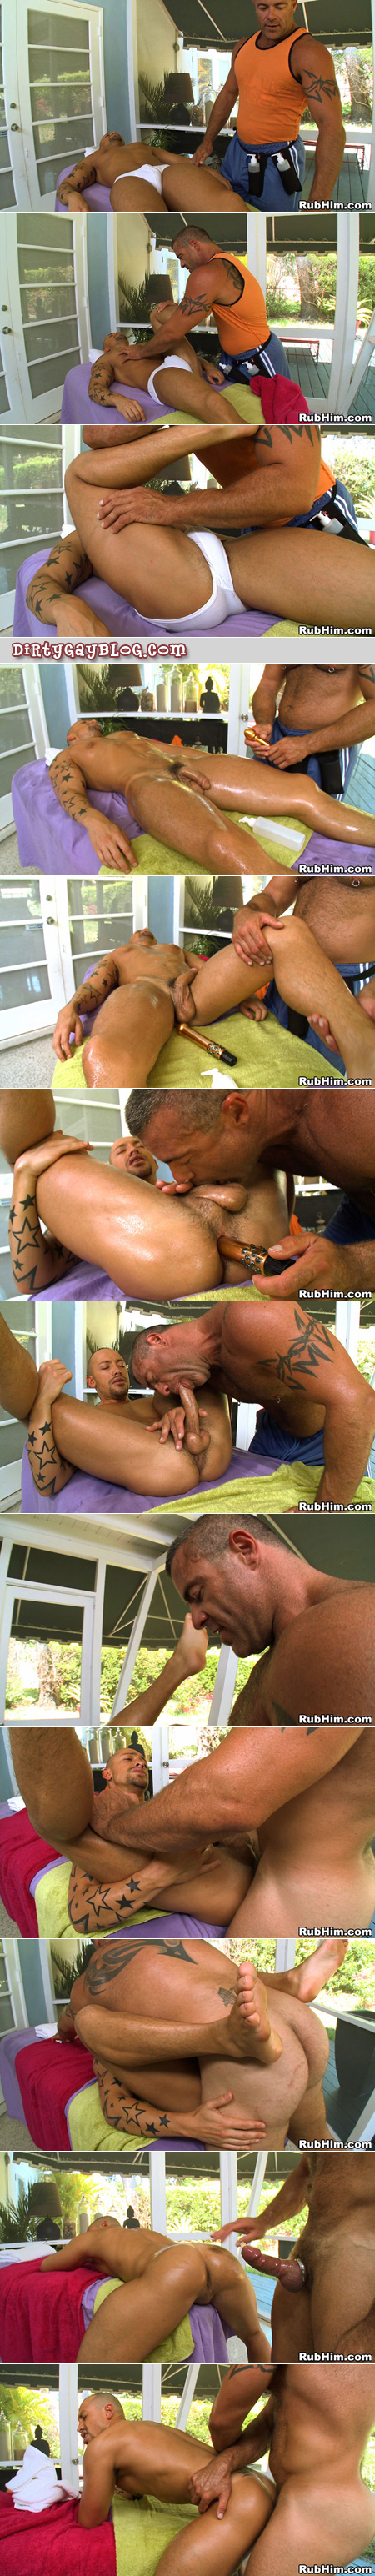 Tattooed, hairy muscle man massages guys inside and out in this free gay video.